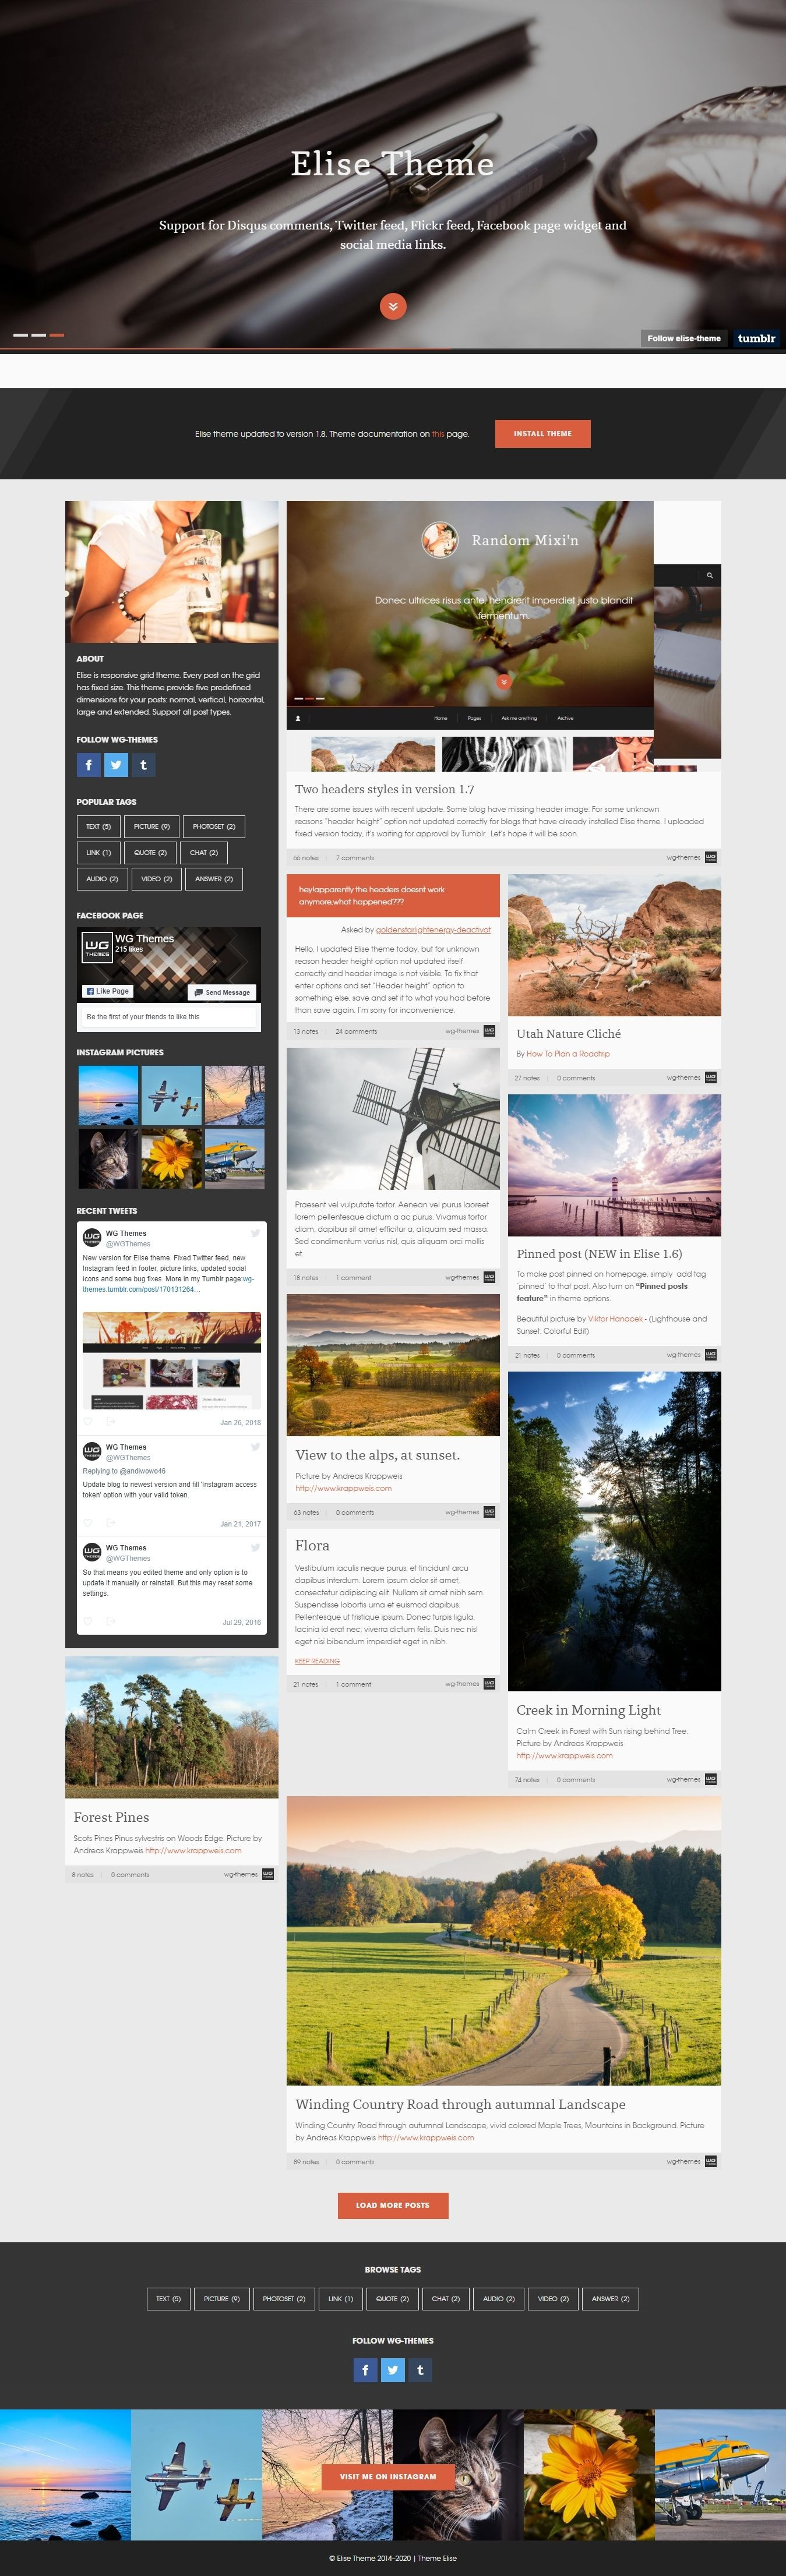 Elise - Free Modern Tumblr Blog theme